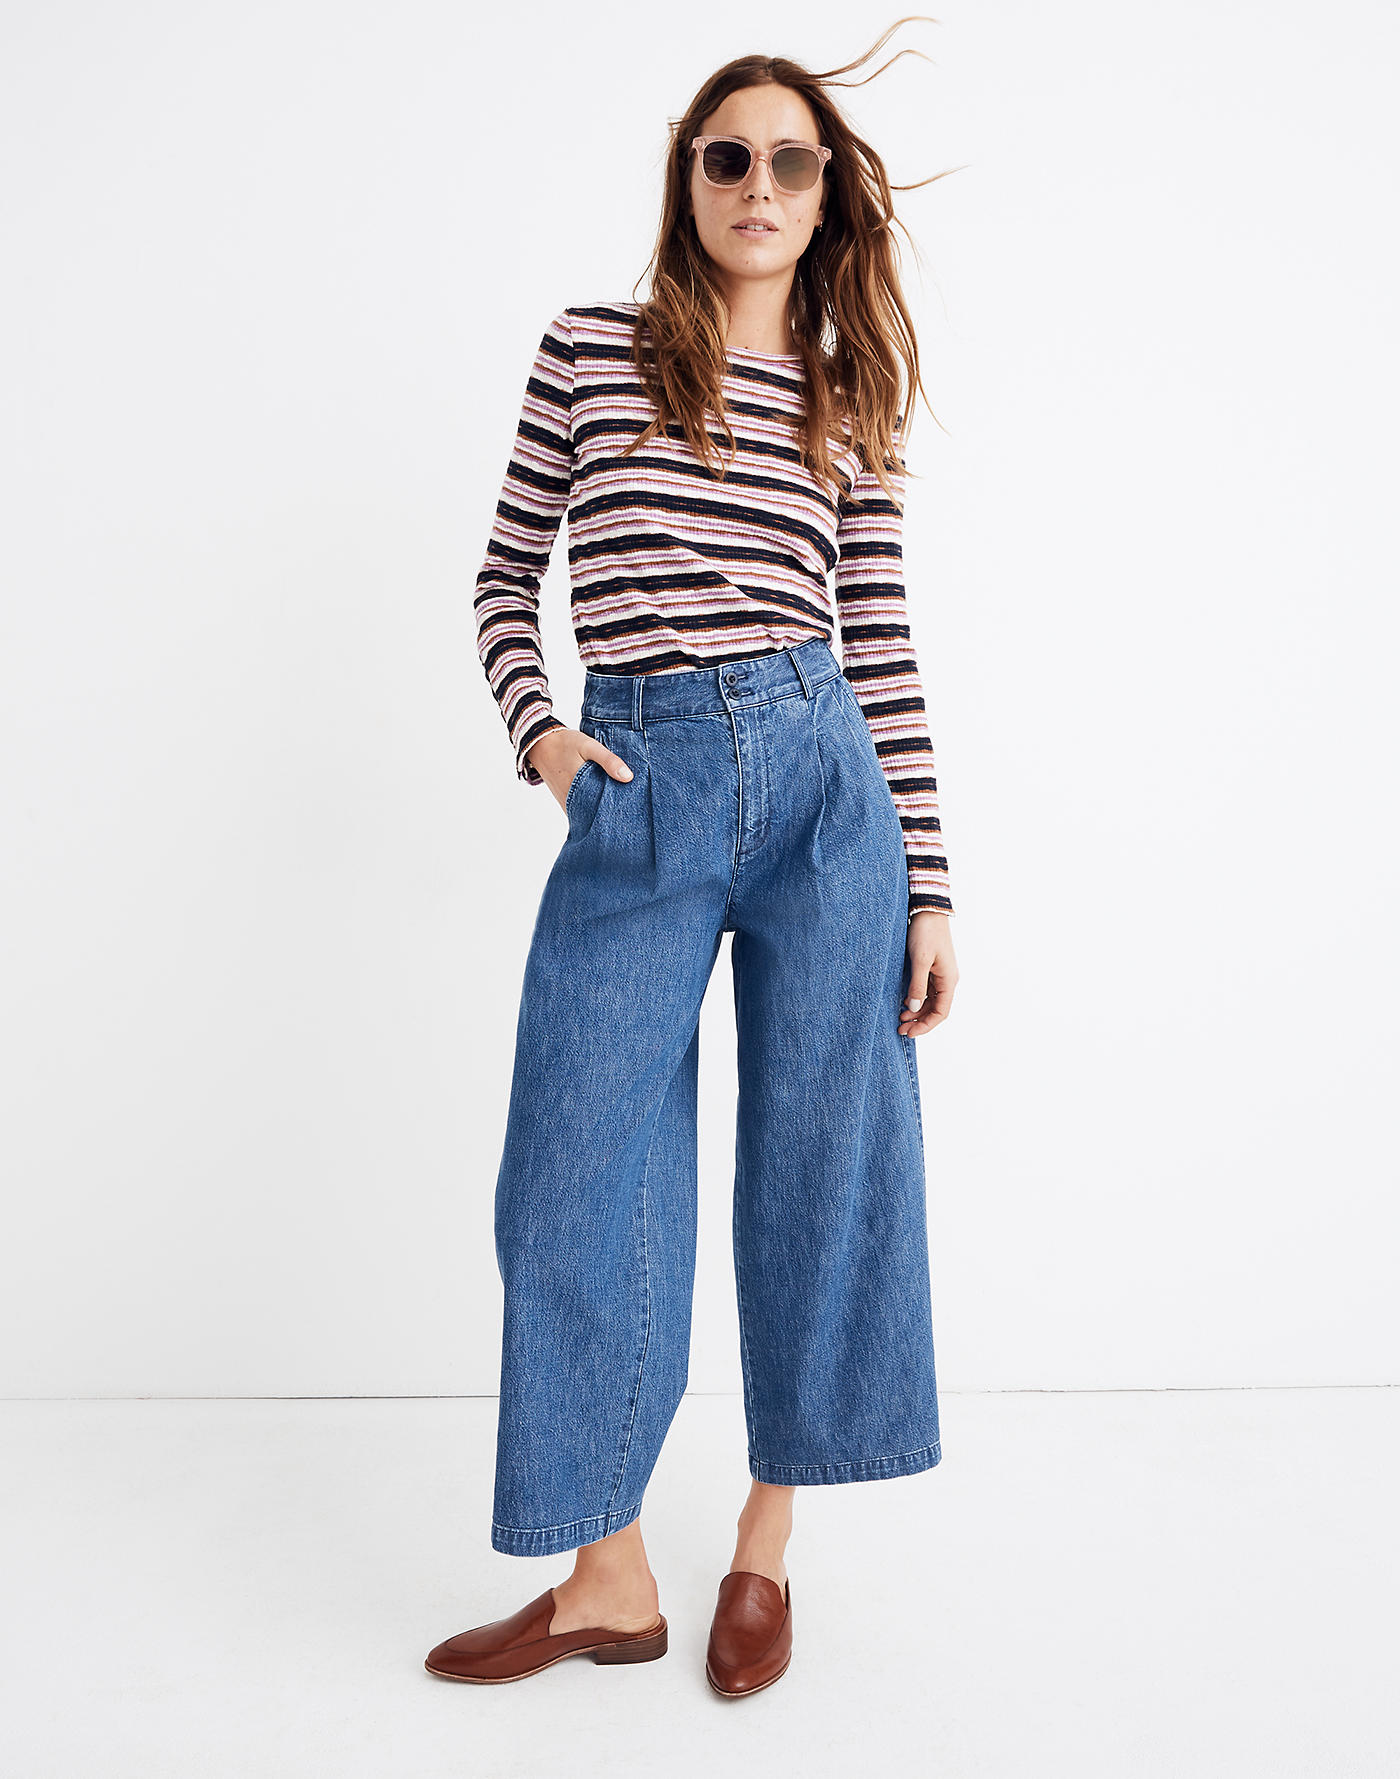 madewell-pleated-jean.jpg